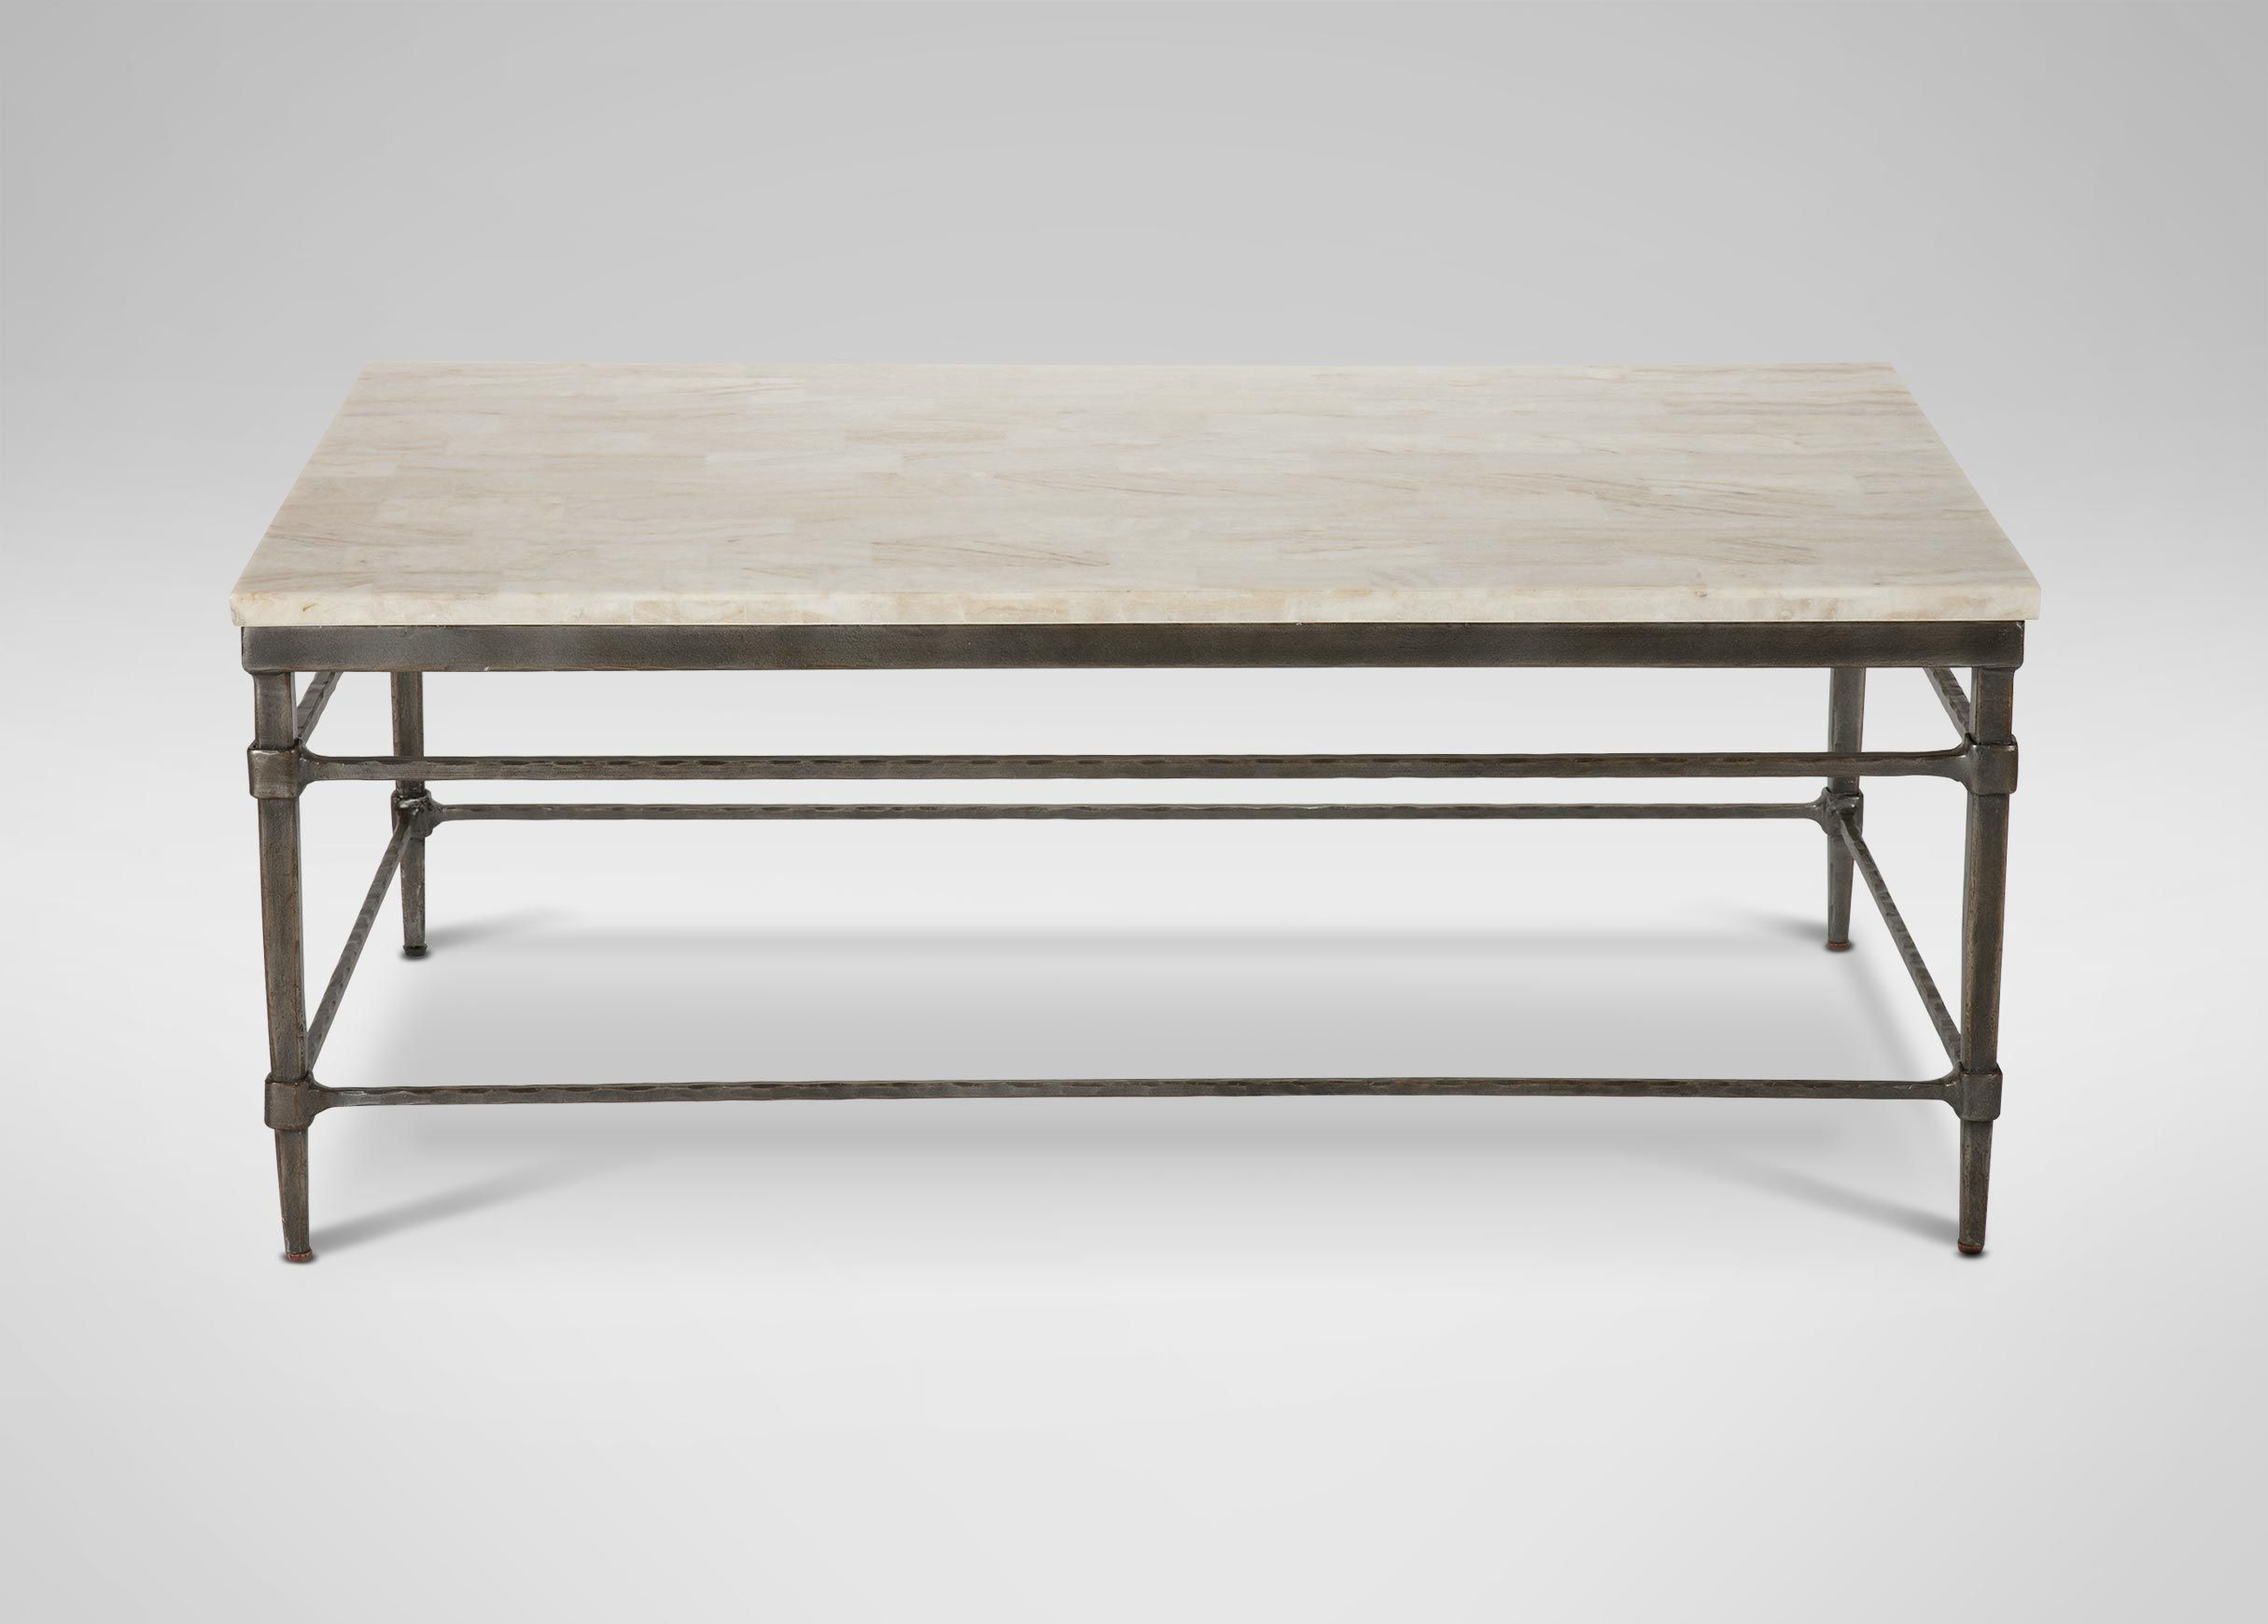 Delicieux Vida Large Stone Top Coffee Table | Coffee Tables | Ethan Allen